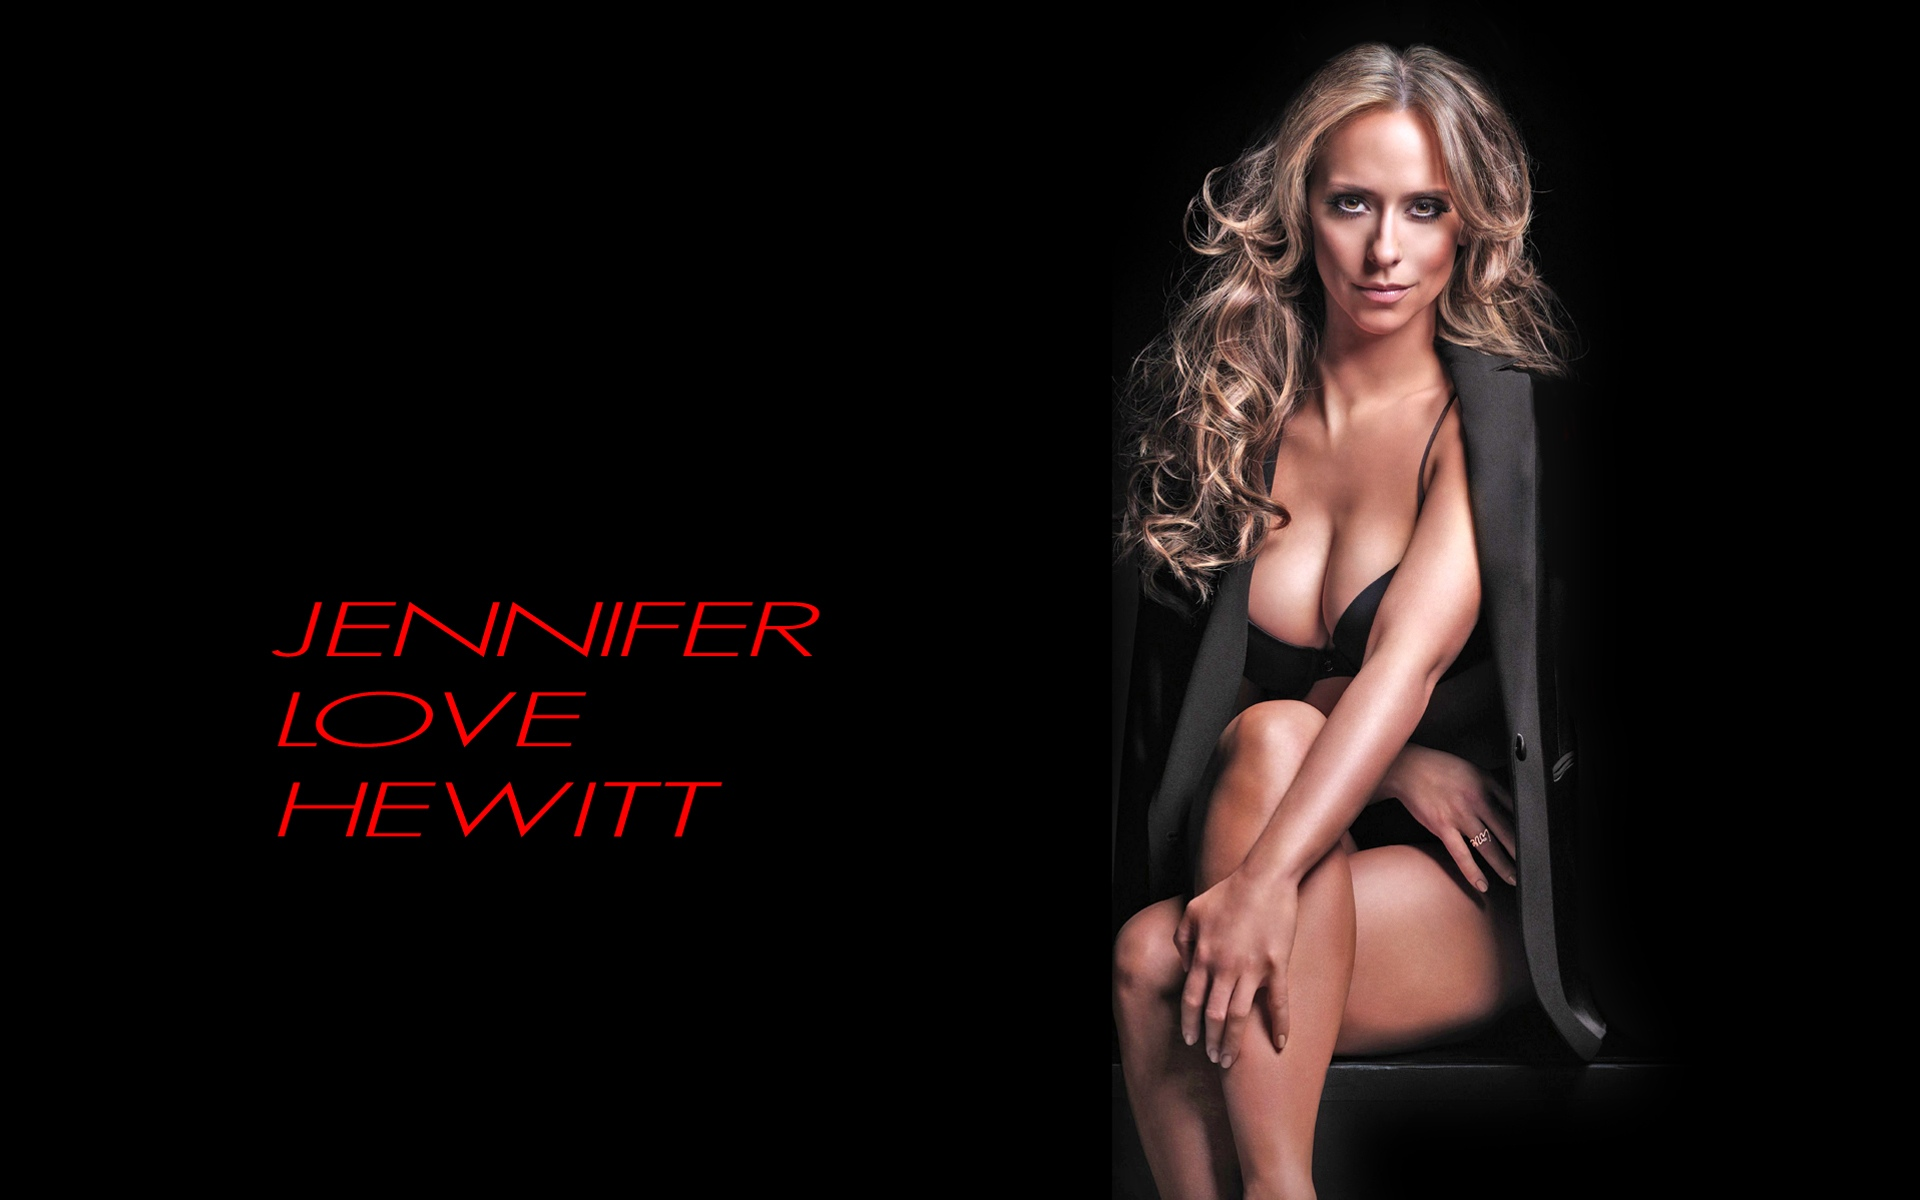 New Love Hot Wallpaper : Pin Jennifer Love Hewitt Hot And Sexy Wallpapers 1600 1920 04 cake on Pinterest